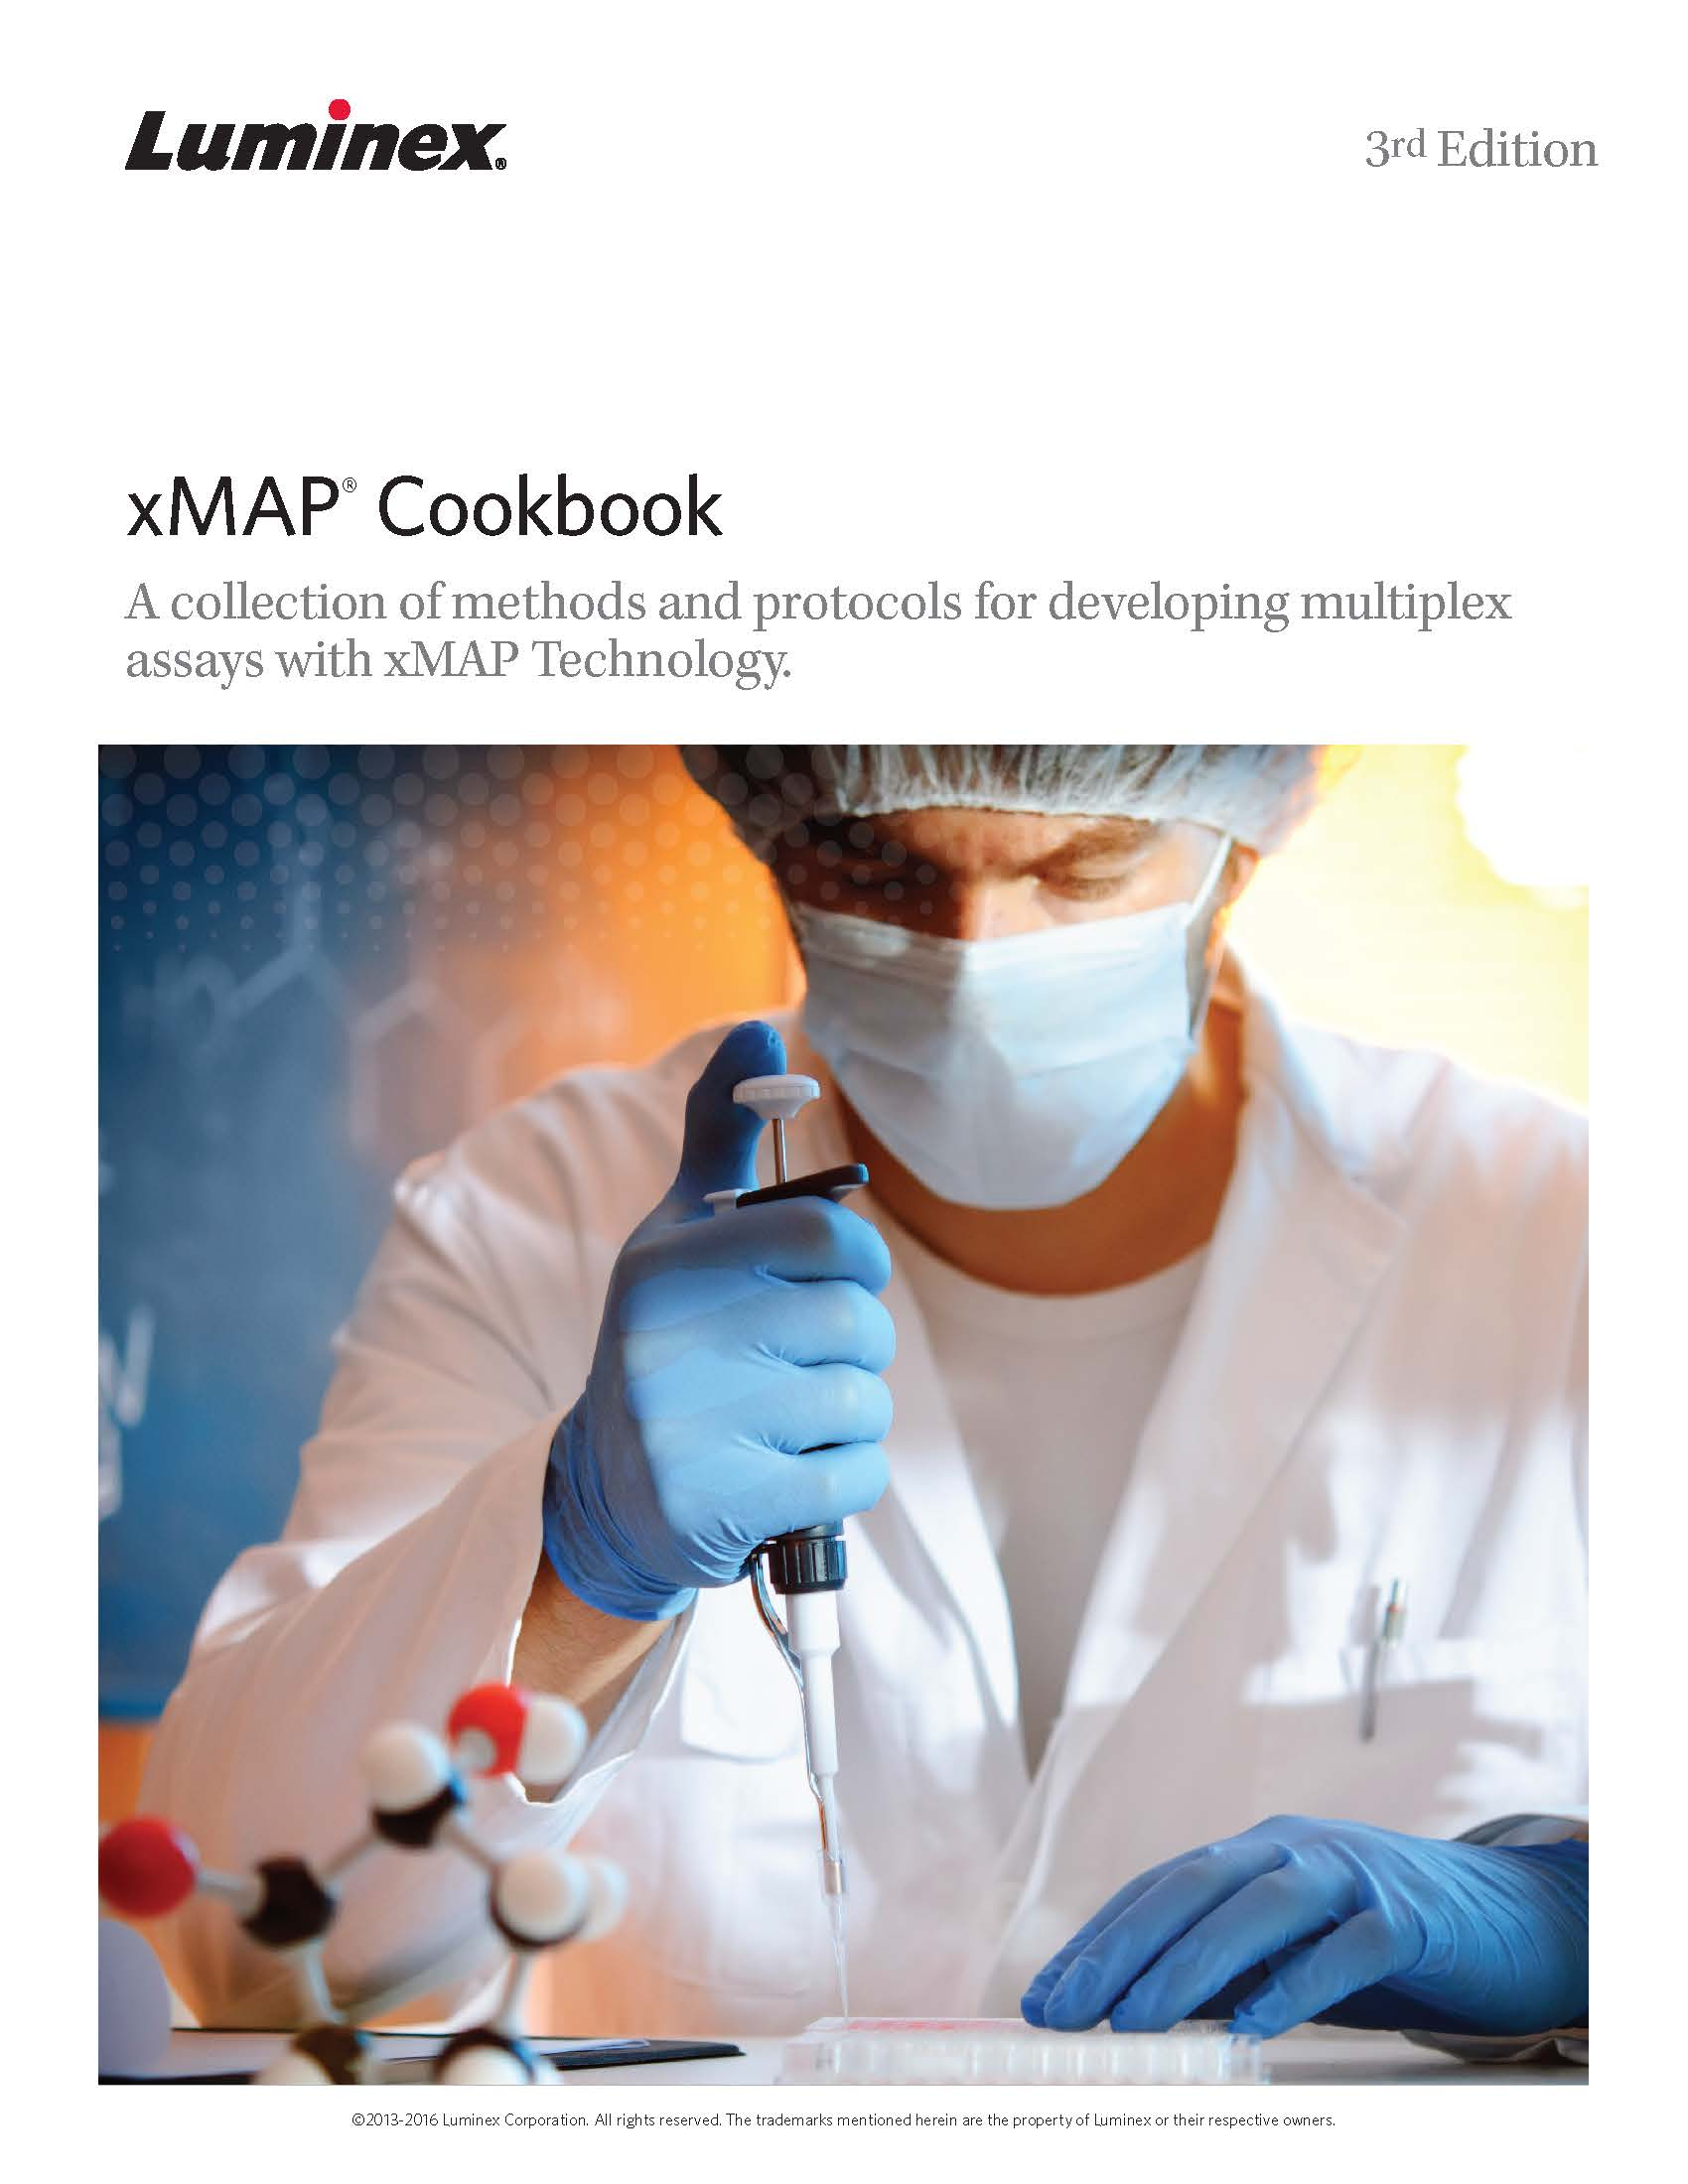 The xMAP Cookbook Third Edition